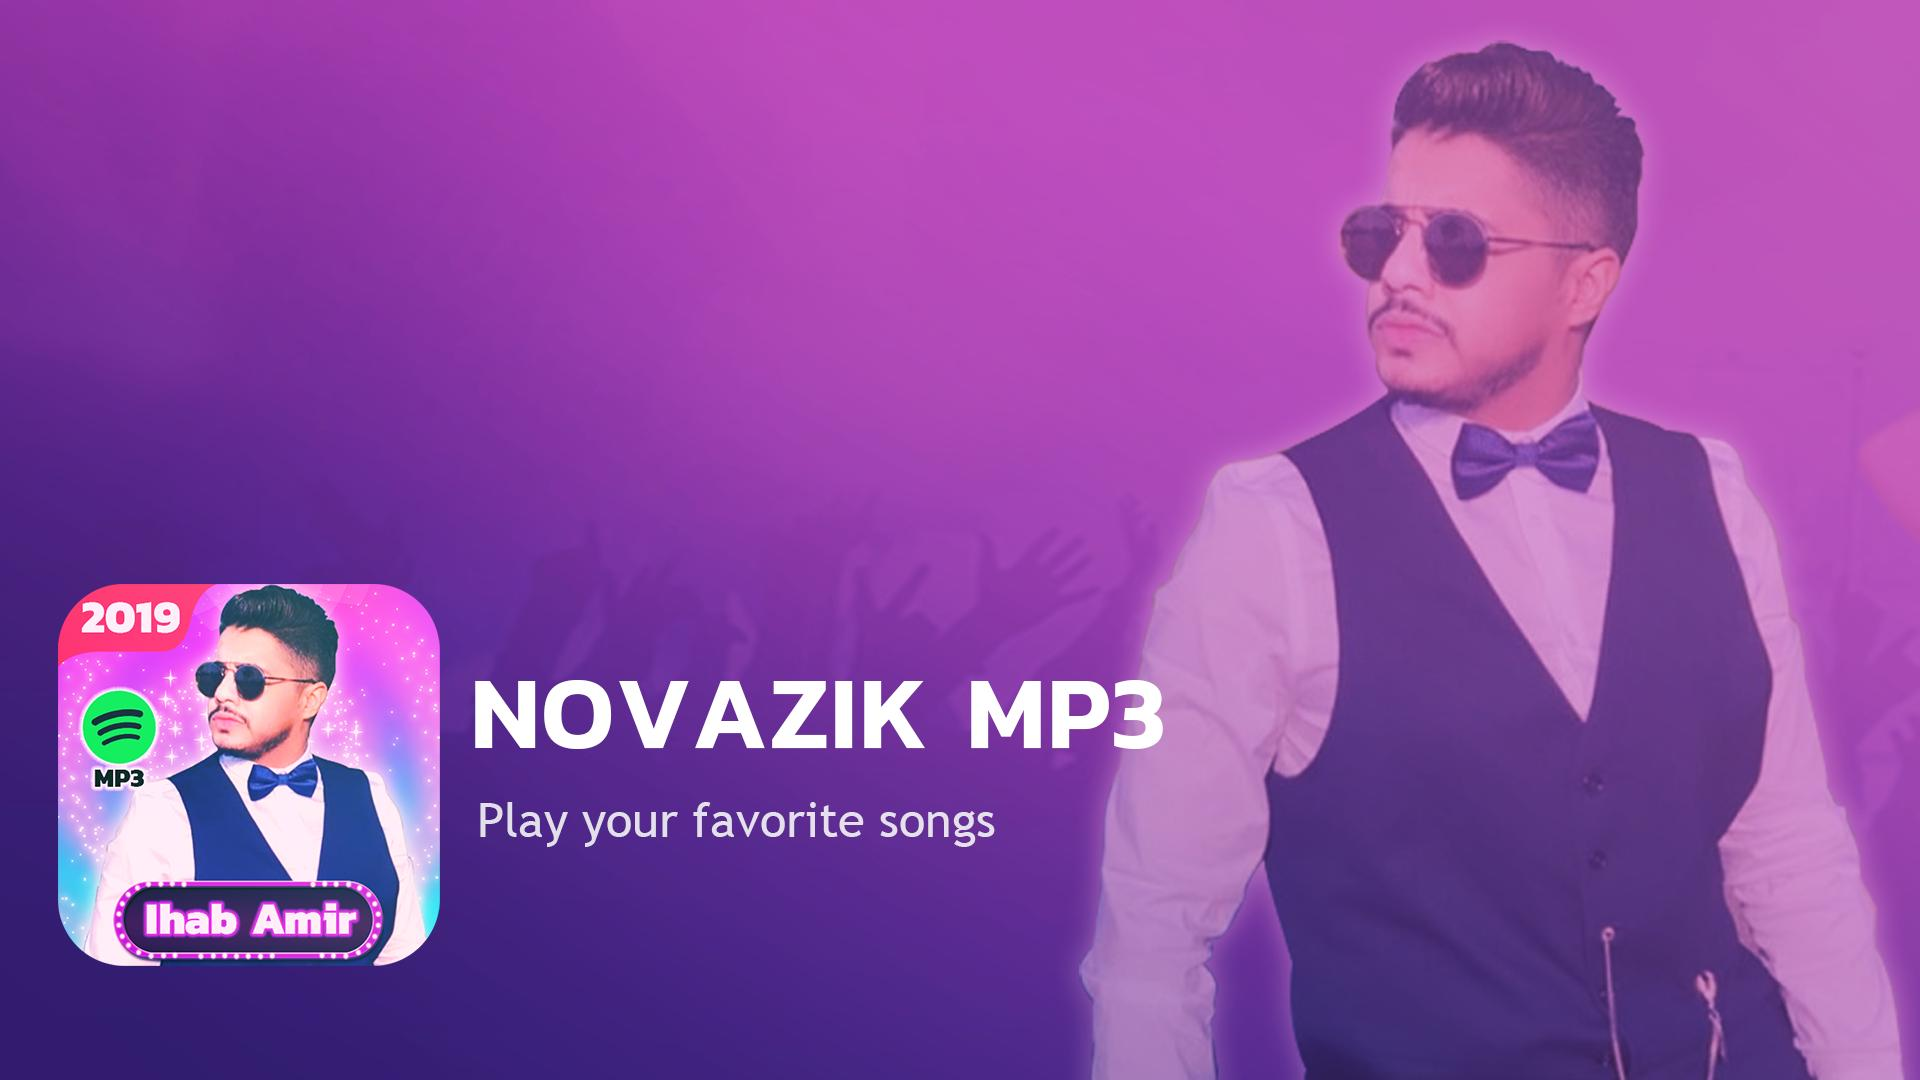 IHAB MADARNA WALO TÉLÉCHARGER AMIR MUSIC